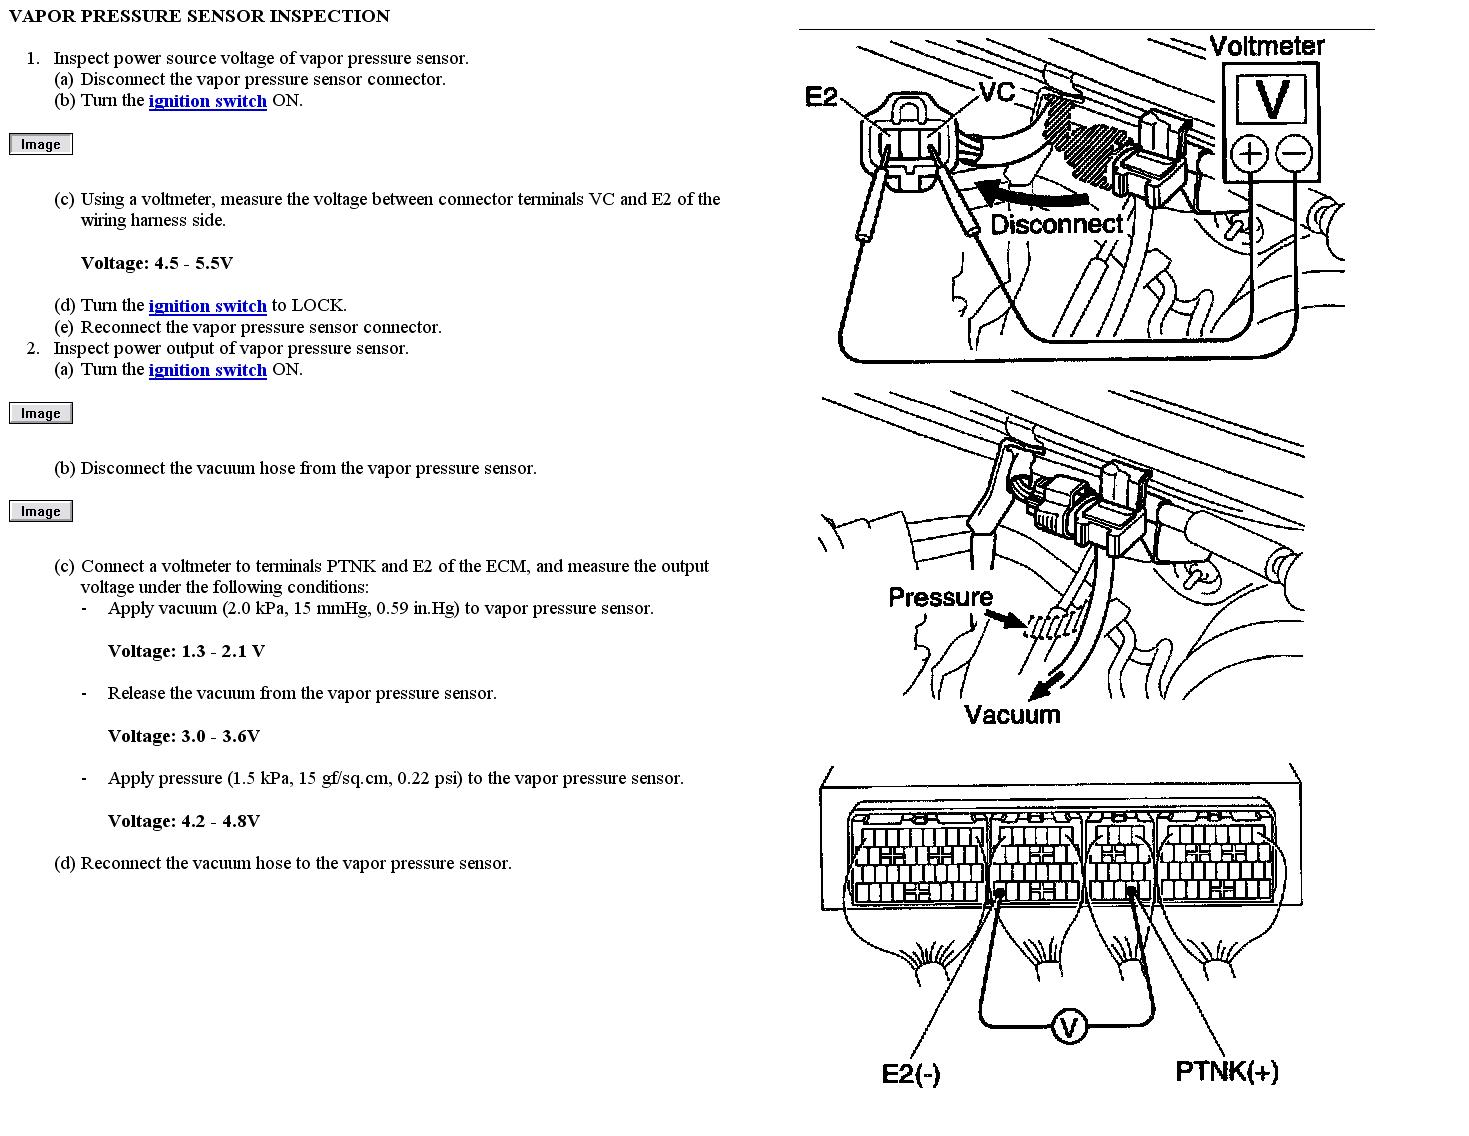 1997 Toyota Camry Vacuum Diagram Wiring Fuse Box 2002 Ecu Schematic Or Check Engine Light On Code P0401 Replaced Egr Rh Justanswer Com